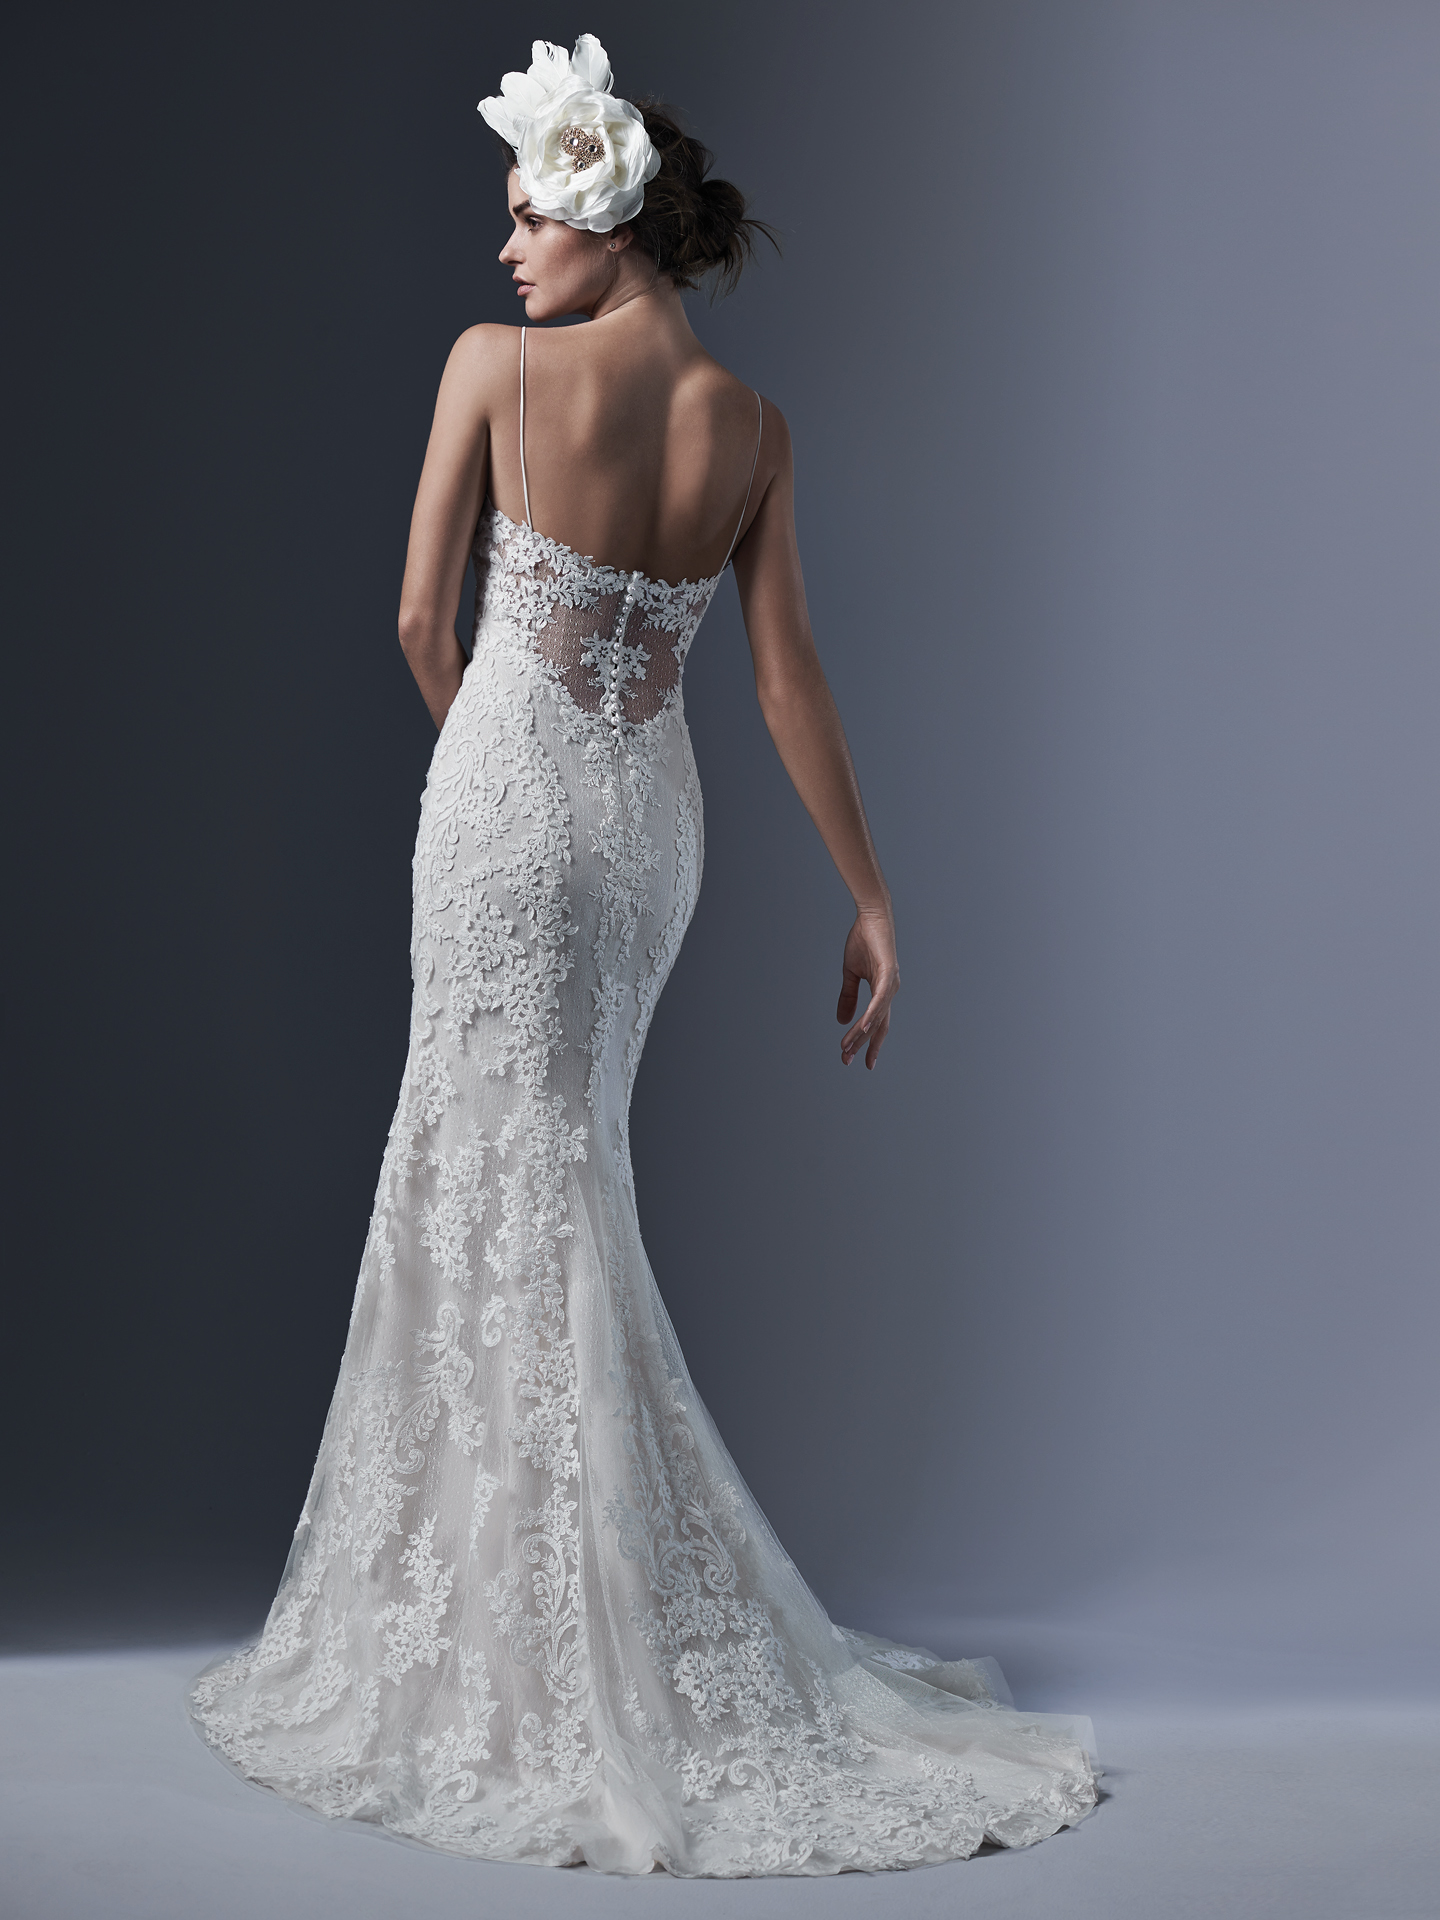 Mattea by Sottero and Midgley. Refined elegance is found in this chic lace sheath wedding dress; accented with sexy spaghetti straps; demure illusion back and V-neckline. Finished with pearl buttons and zipper closure.